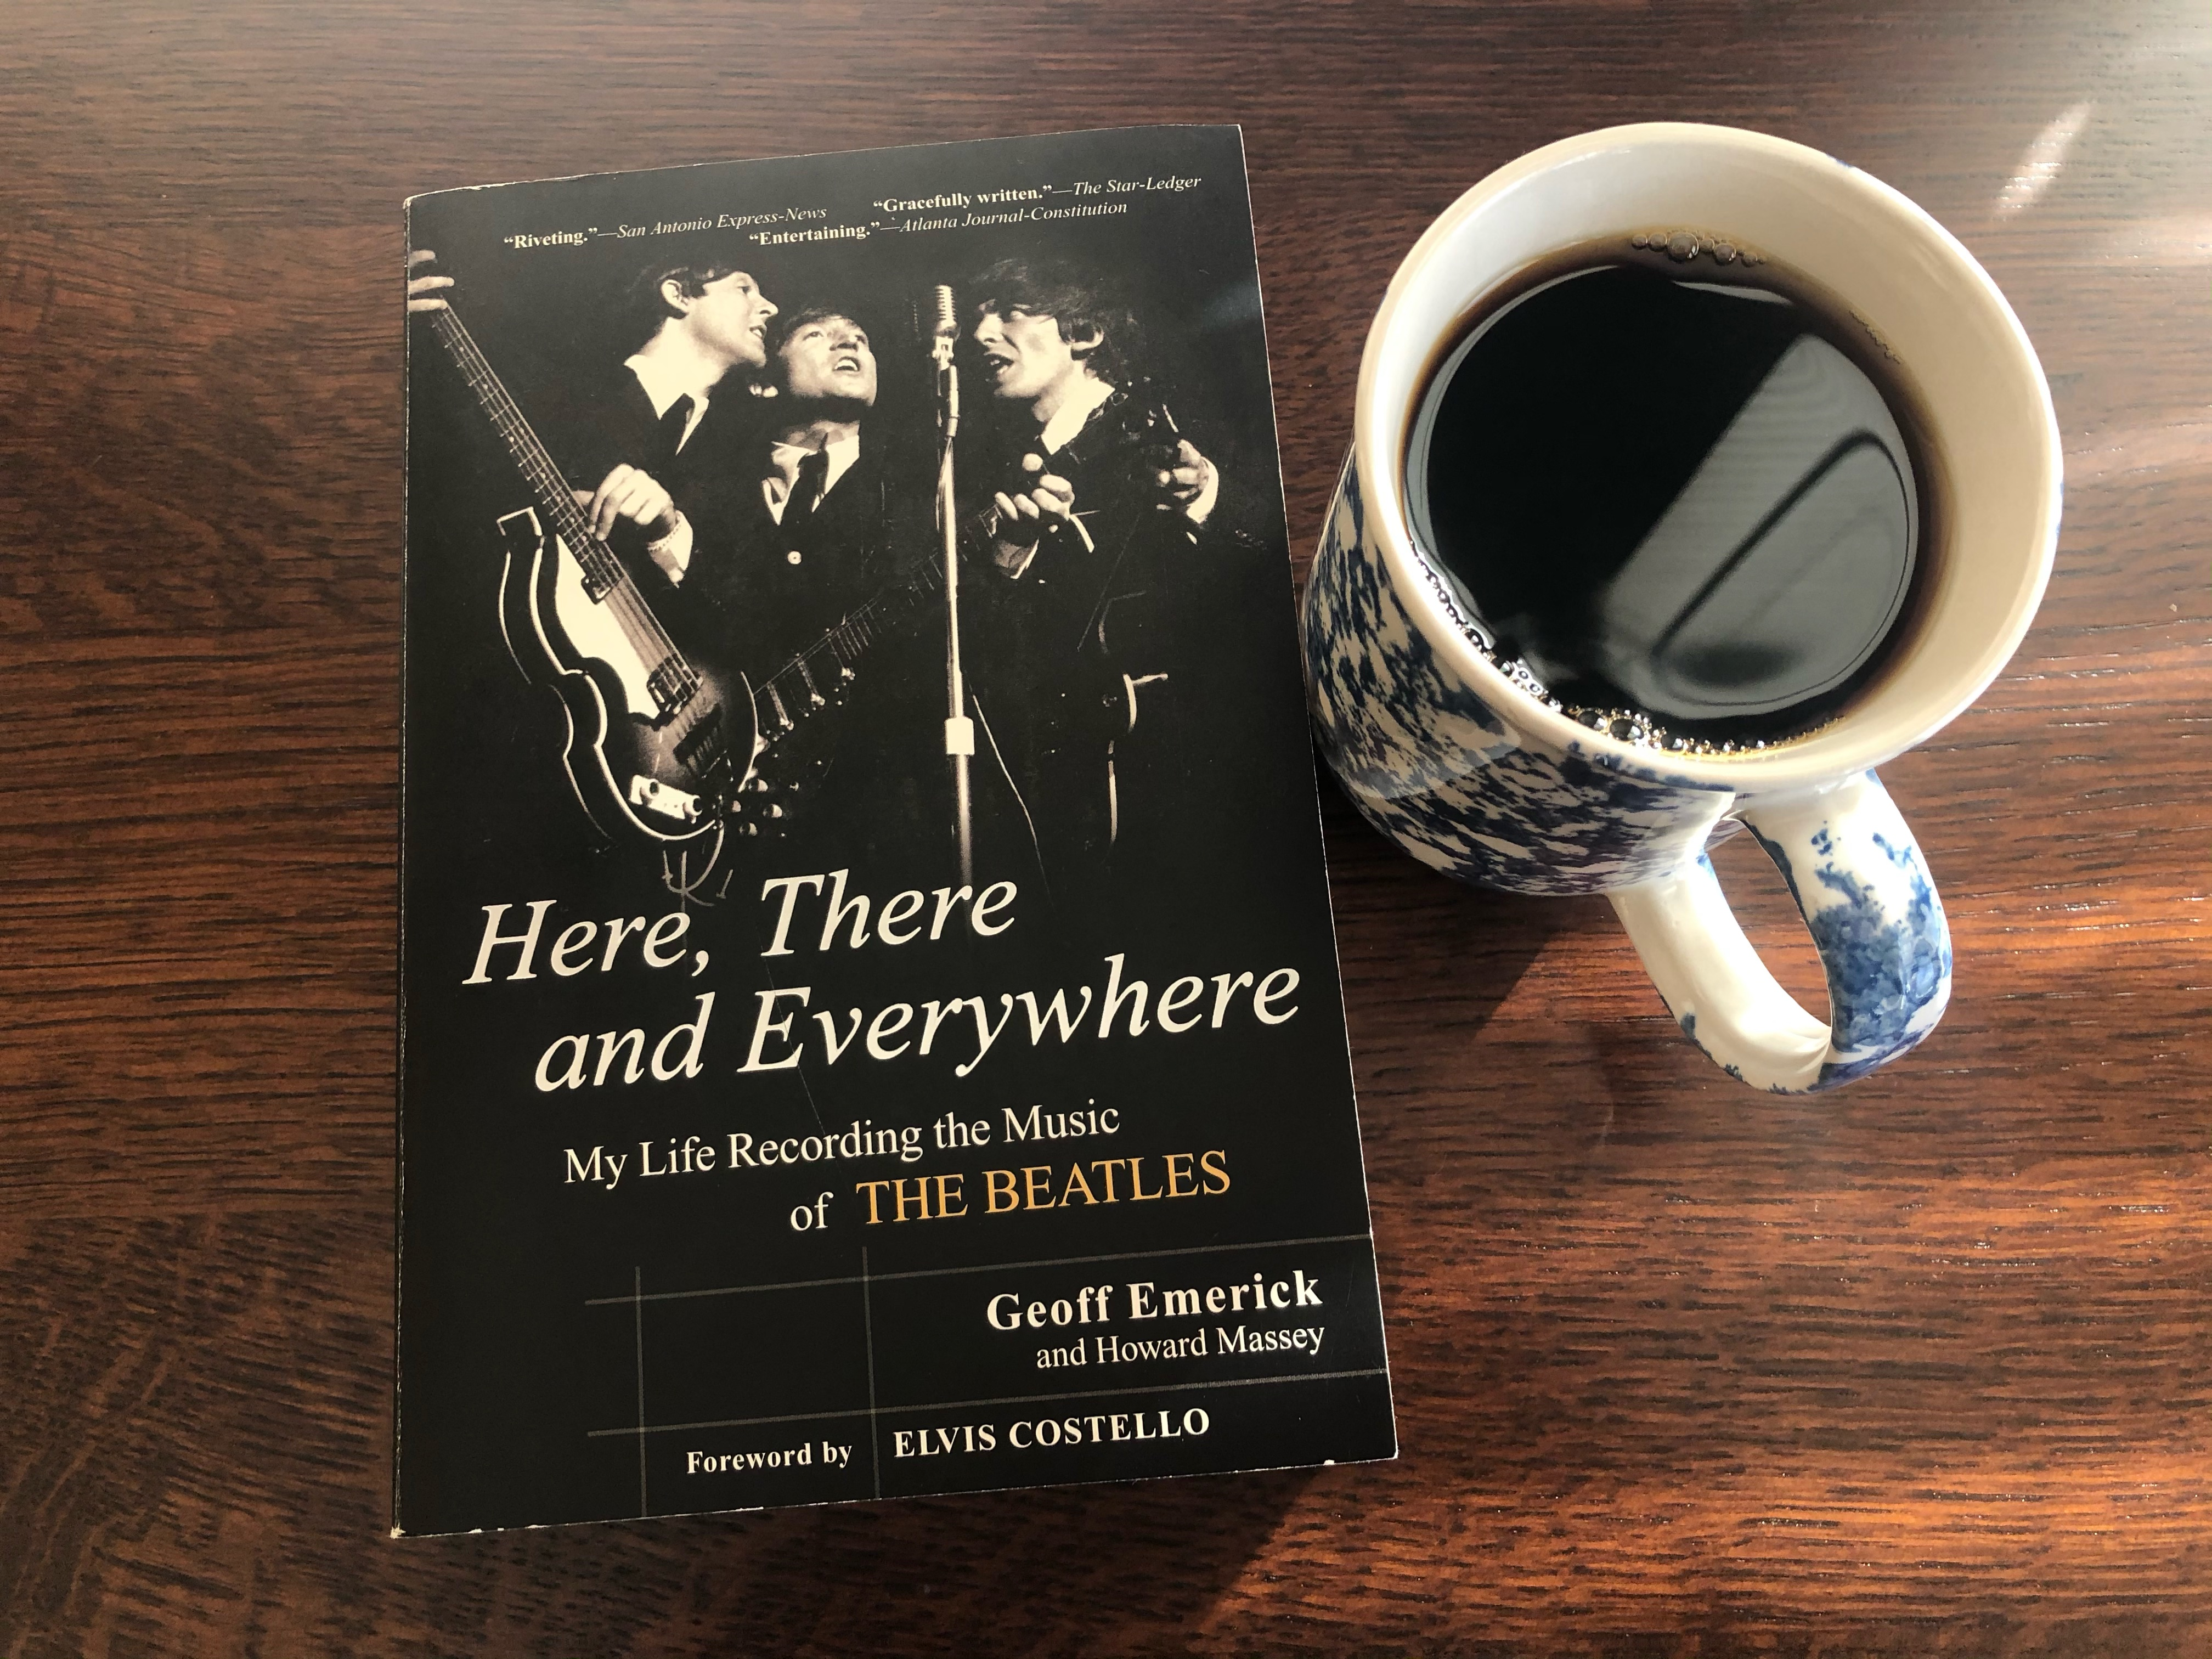 Here, There and Everywhere by Geoff Emerick book and a cup of coffee